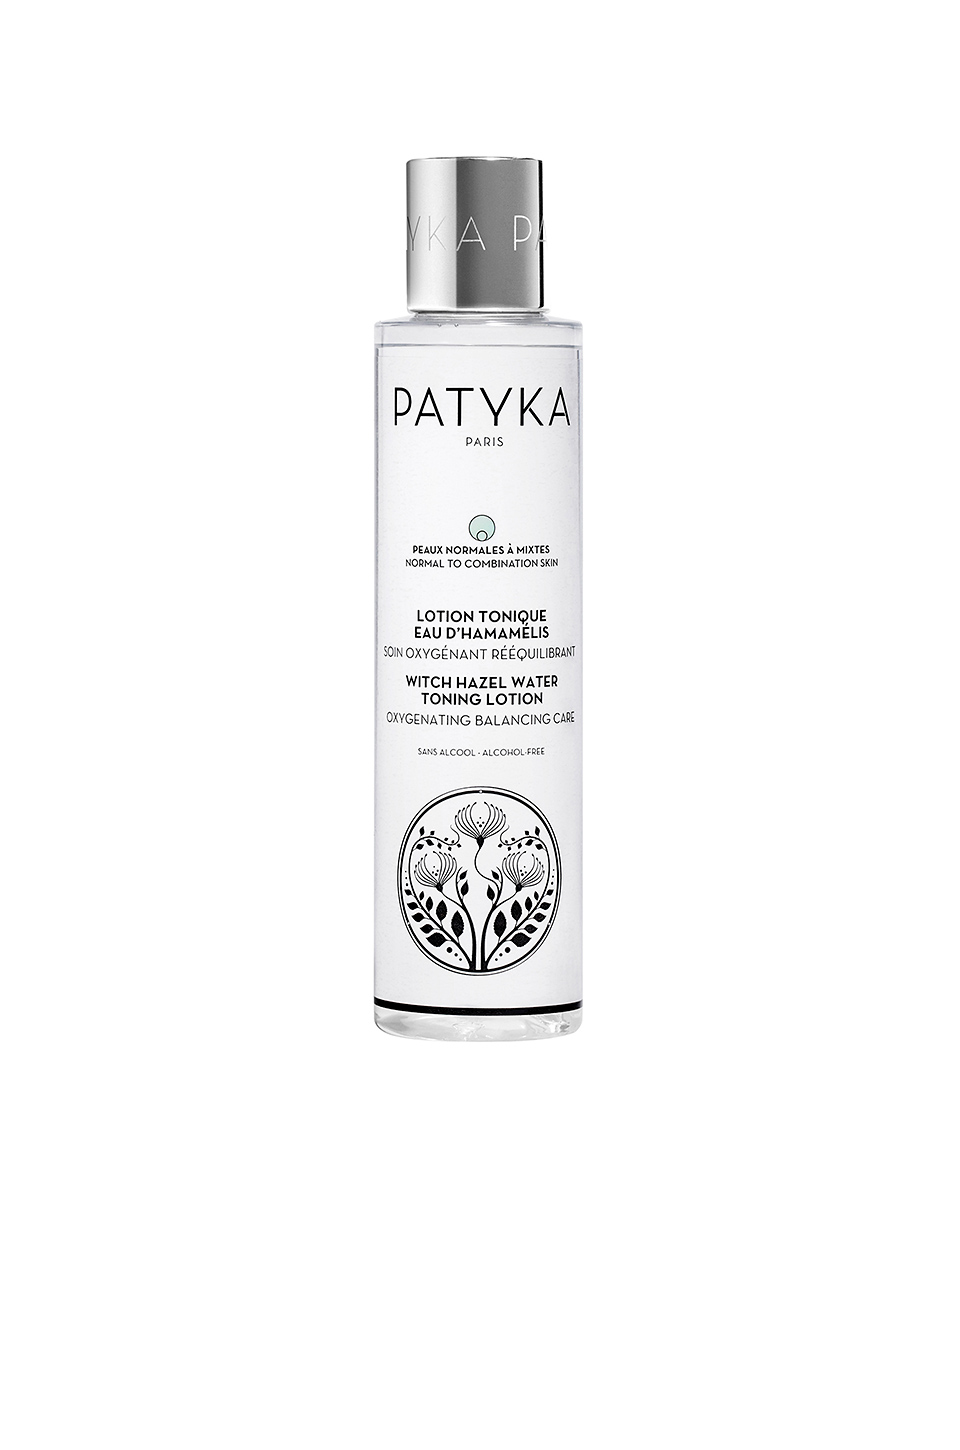 Patyka Witch Hazel Floral Water Toning Lotion in